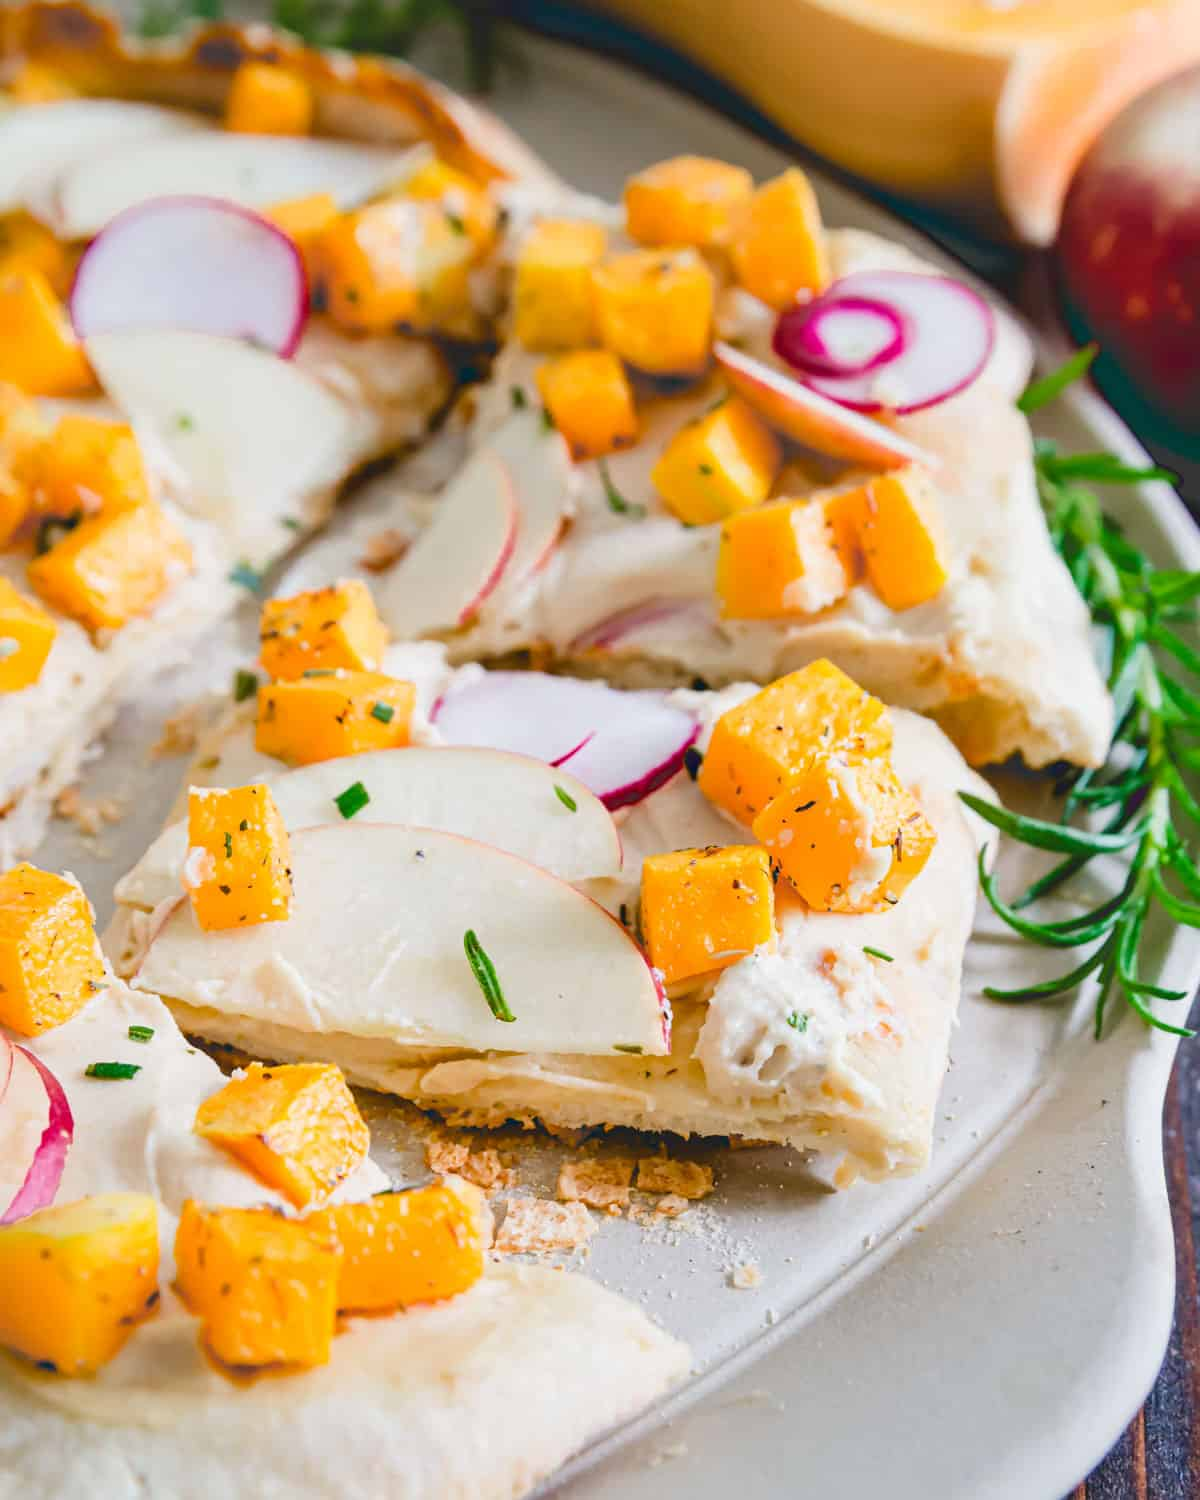 Hummus replaces cheese on this non-traditional fall inspired pizza with rosemary roasted butternut squash, apples and radishes.